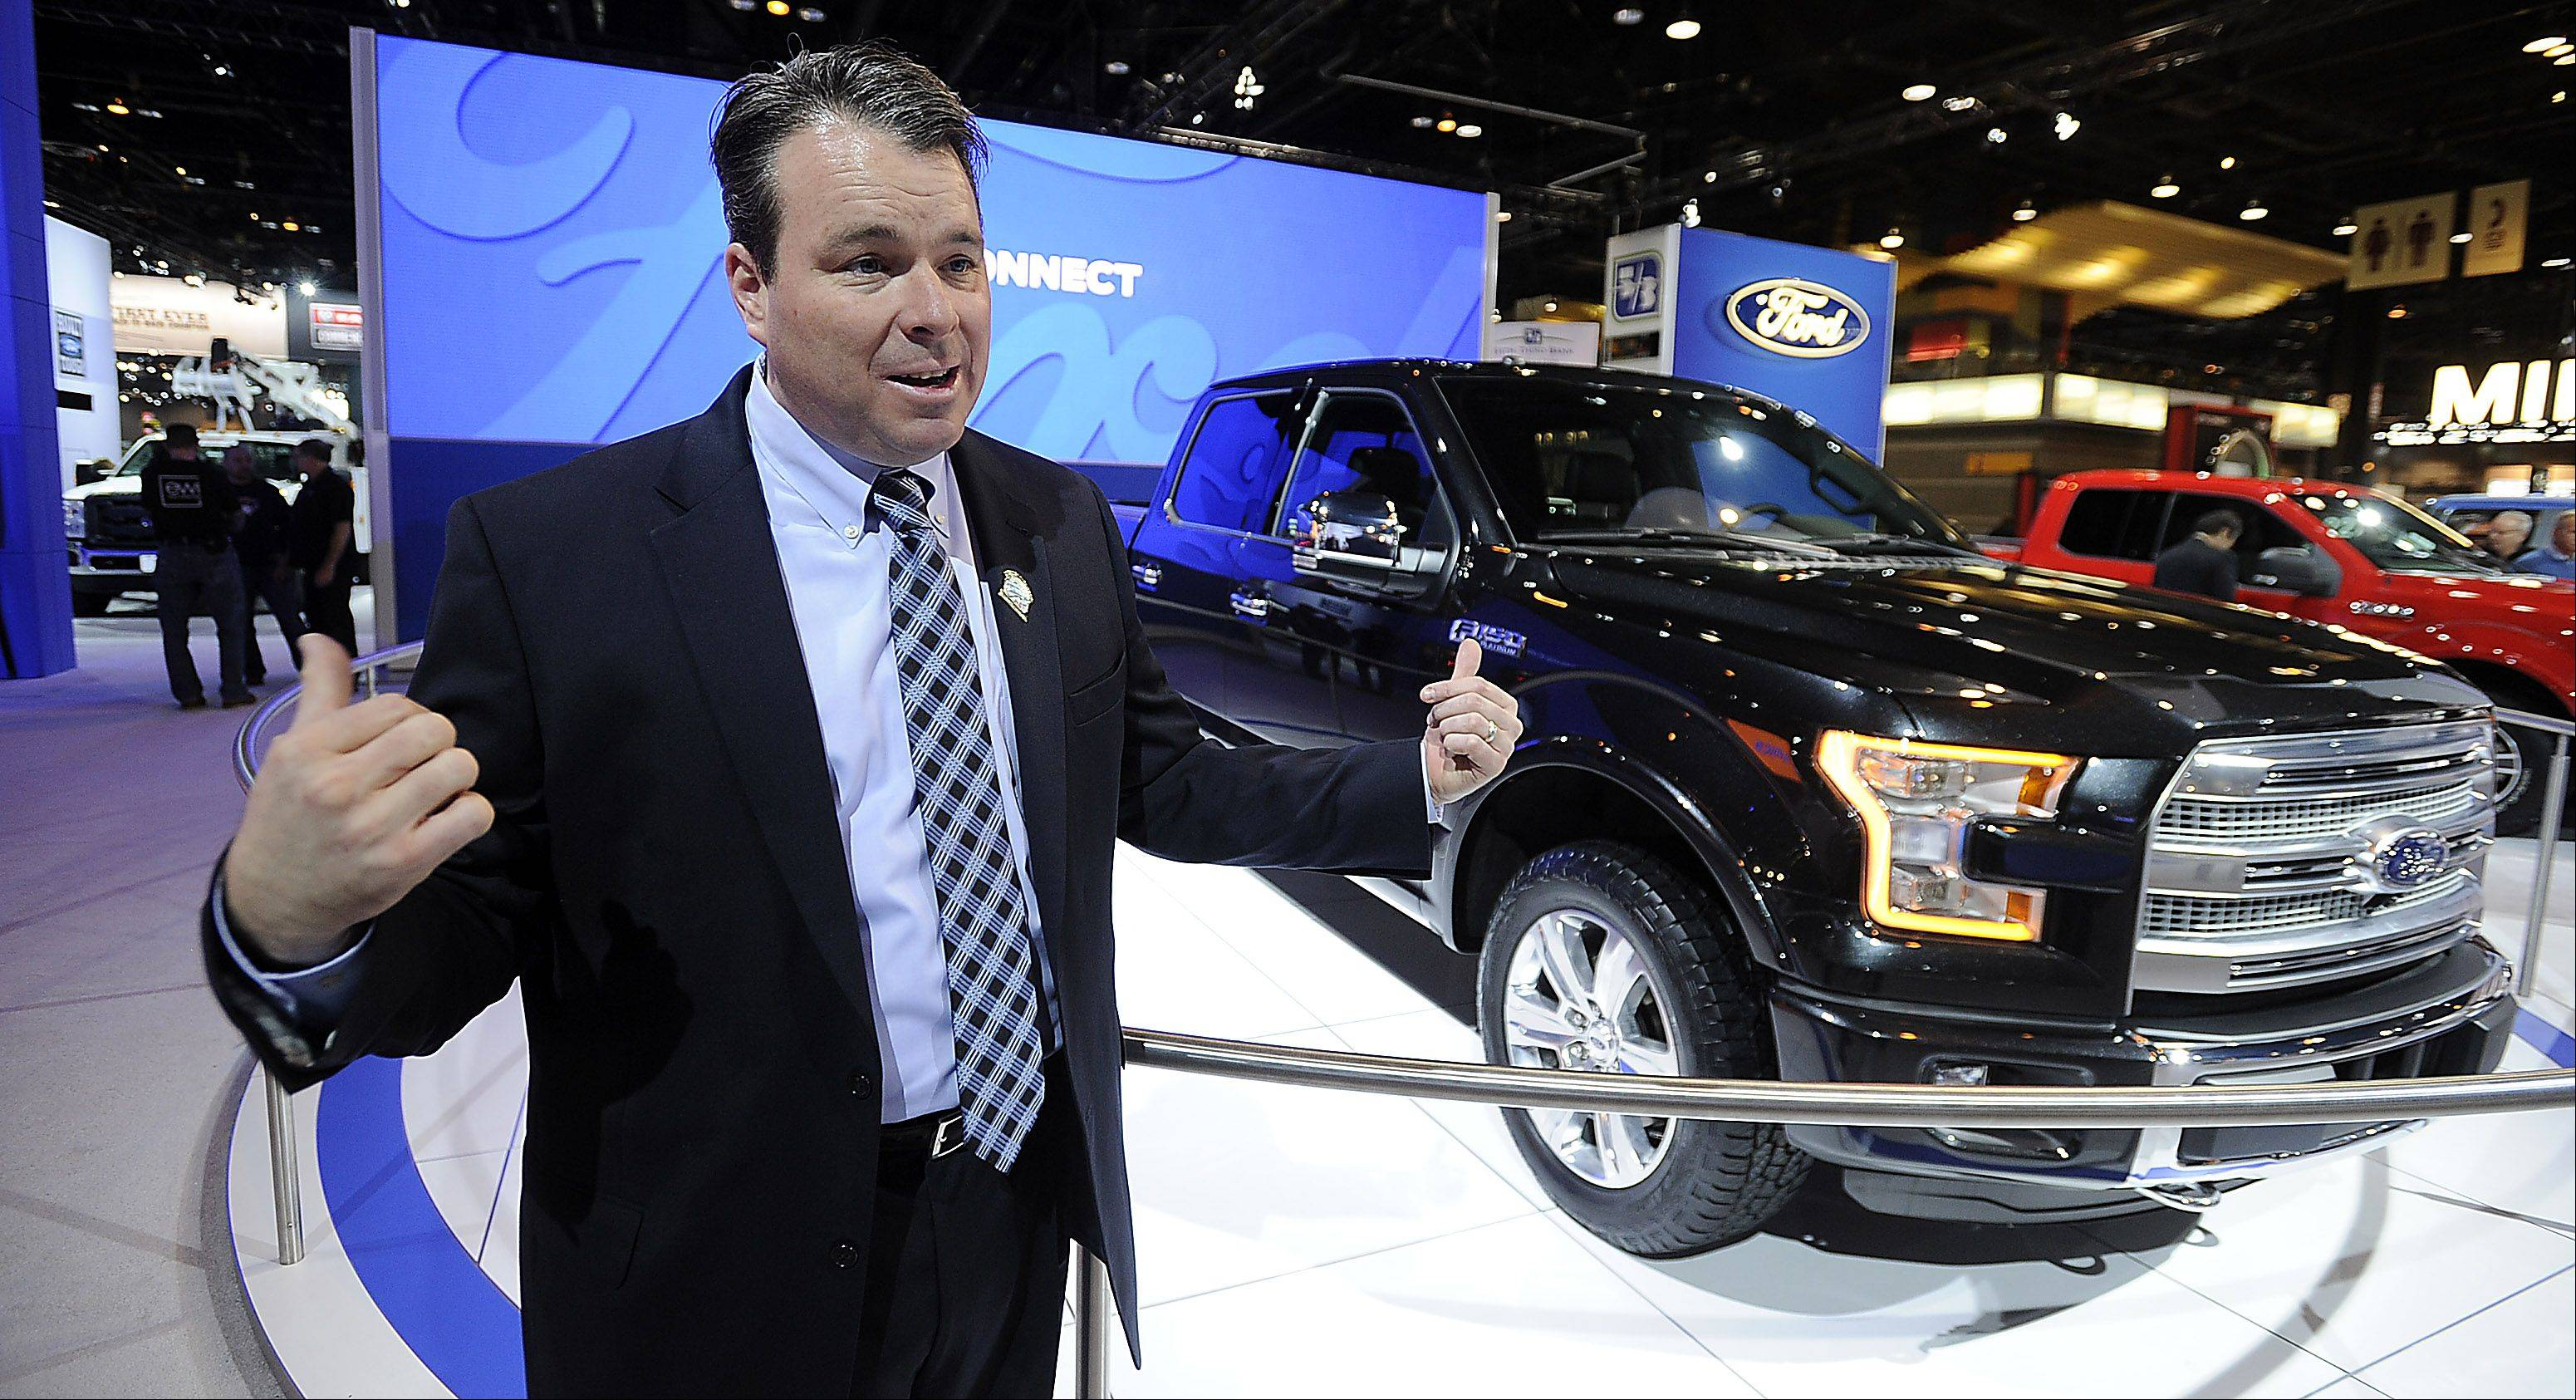 Colin Wickstrom of Wickstrom Ford Lincoln in Barrington shows off the revolutionary 2015 Ford F-150, made with an aluminum frame, at the Chicago Auto Show Thursday.